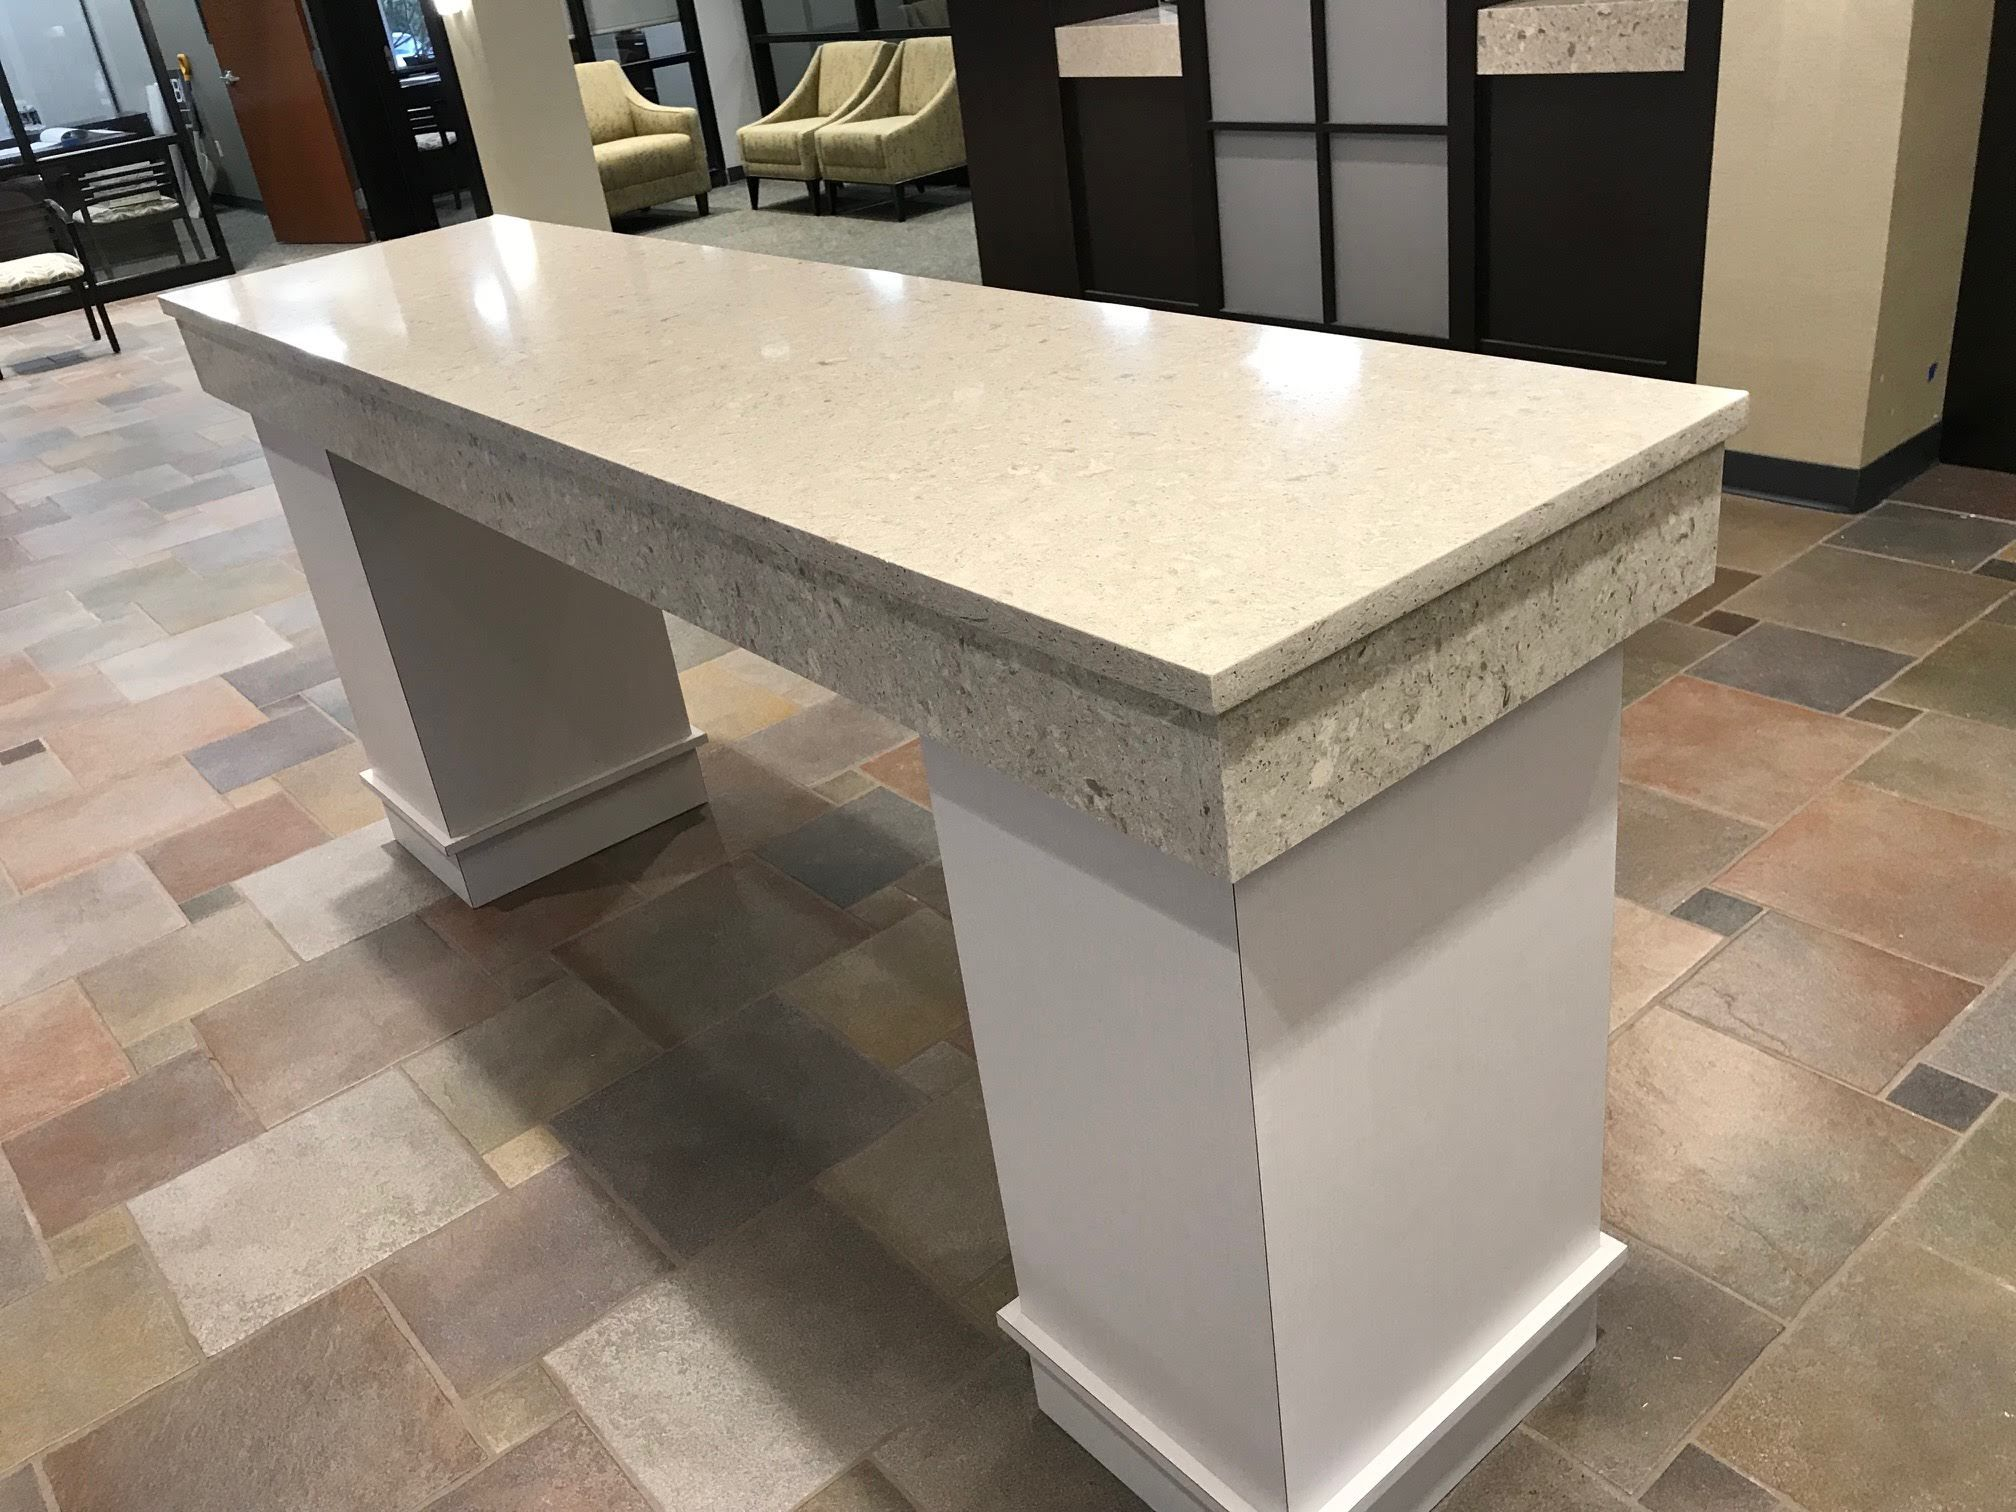 Rocky Tops Custom Countertops Granite Countertop Chattanooga At Rocky Tops Is The Best Choice For R In 2020 Custom Countertops Countertops Engineered Stone Countertops